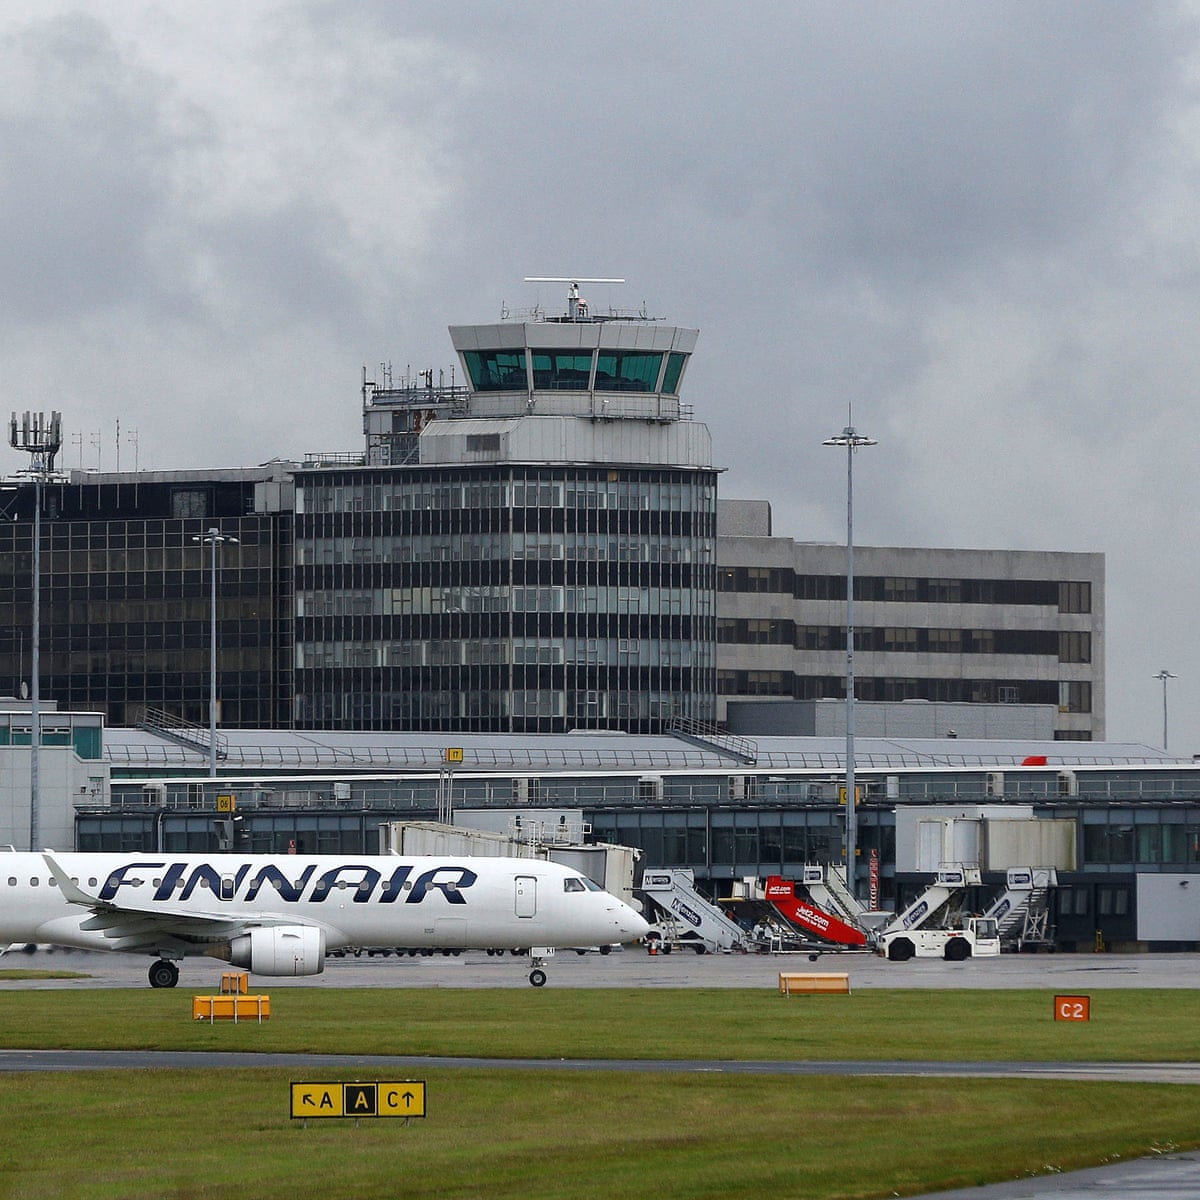 Manchester airport 'back to normal' after cancelled flights | Air transport